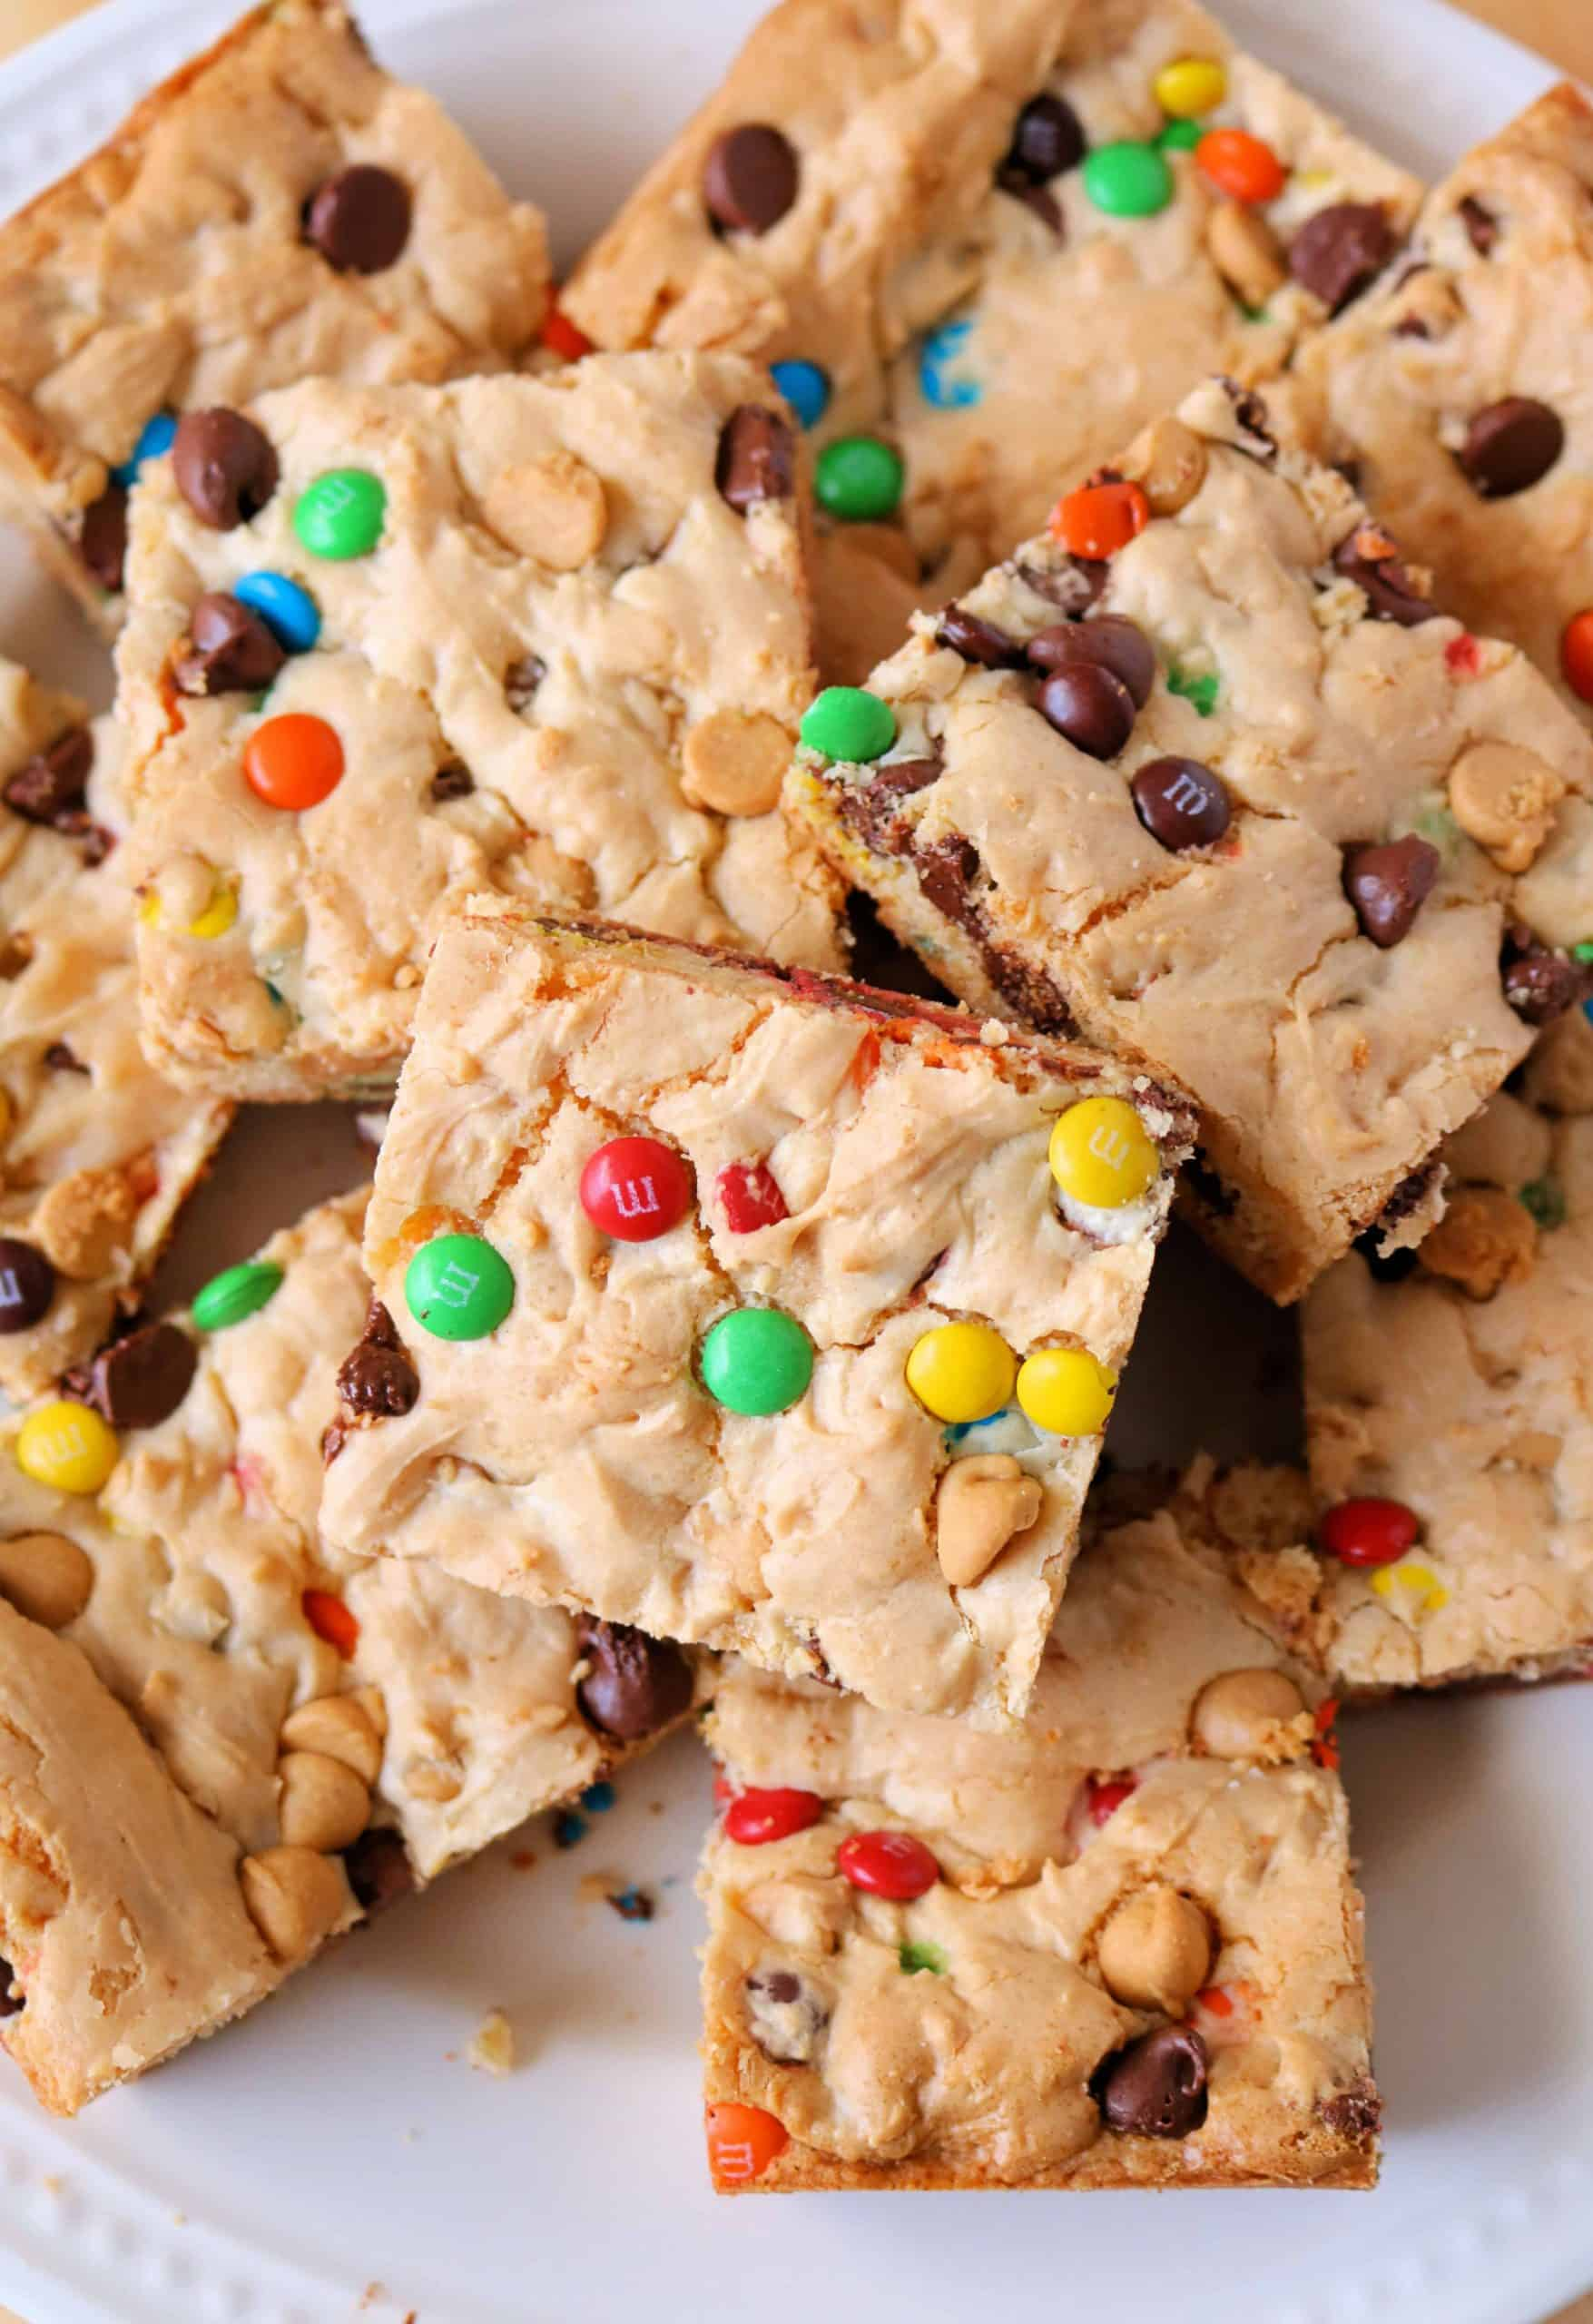 Try my Delicious Loaded Cake Mix Cookie Bars for an easy dessert! These cake mix bars are made in less than 25 minutes with just a few ingredients including a boxed white or yellow cake mix, chocolate chips, peanut butter chips, and mini M&M's. #cakemixbars #cookiebars #dessertbars #lazybars